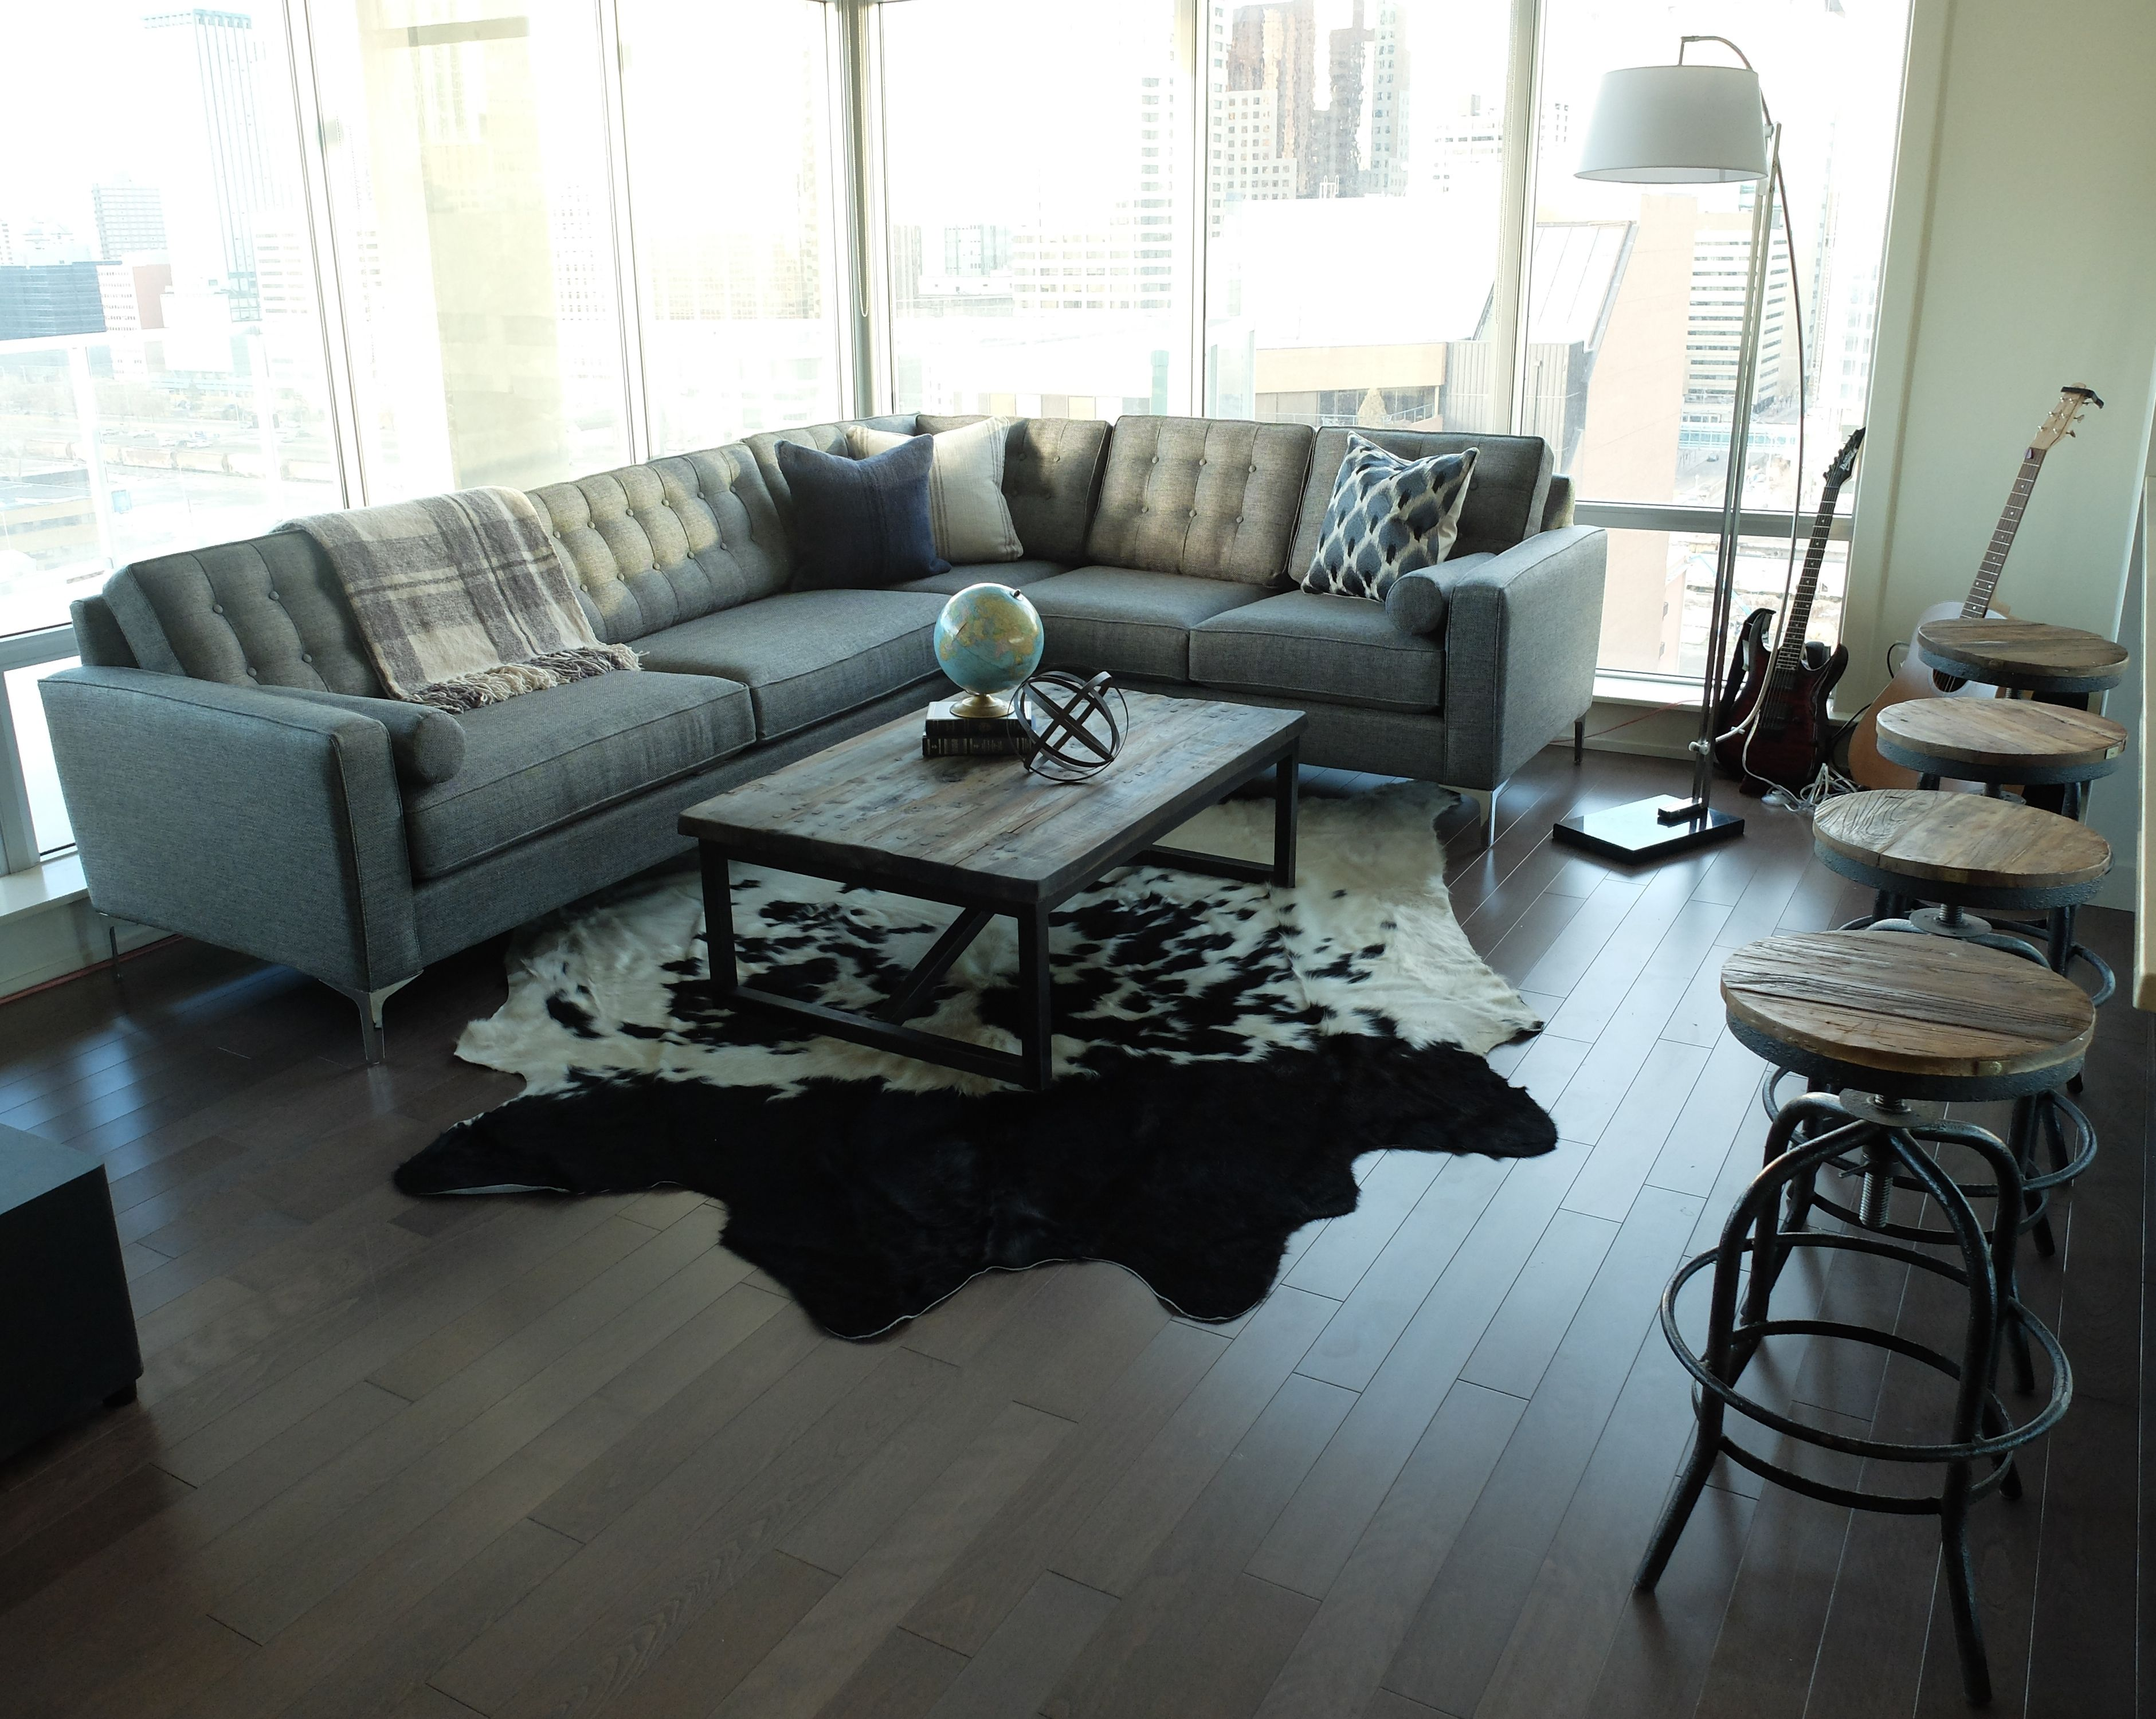 Condo Living Room With Reclaimed Wood Coffee Table Tufted Gray Sectional Black And White